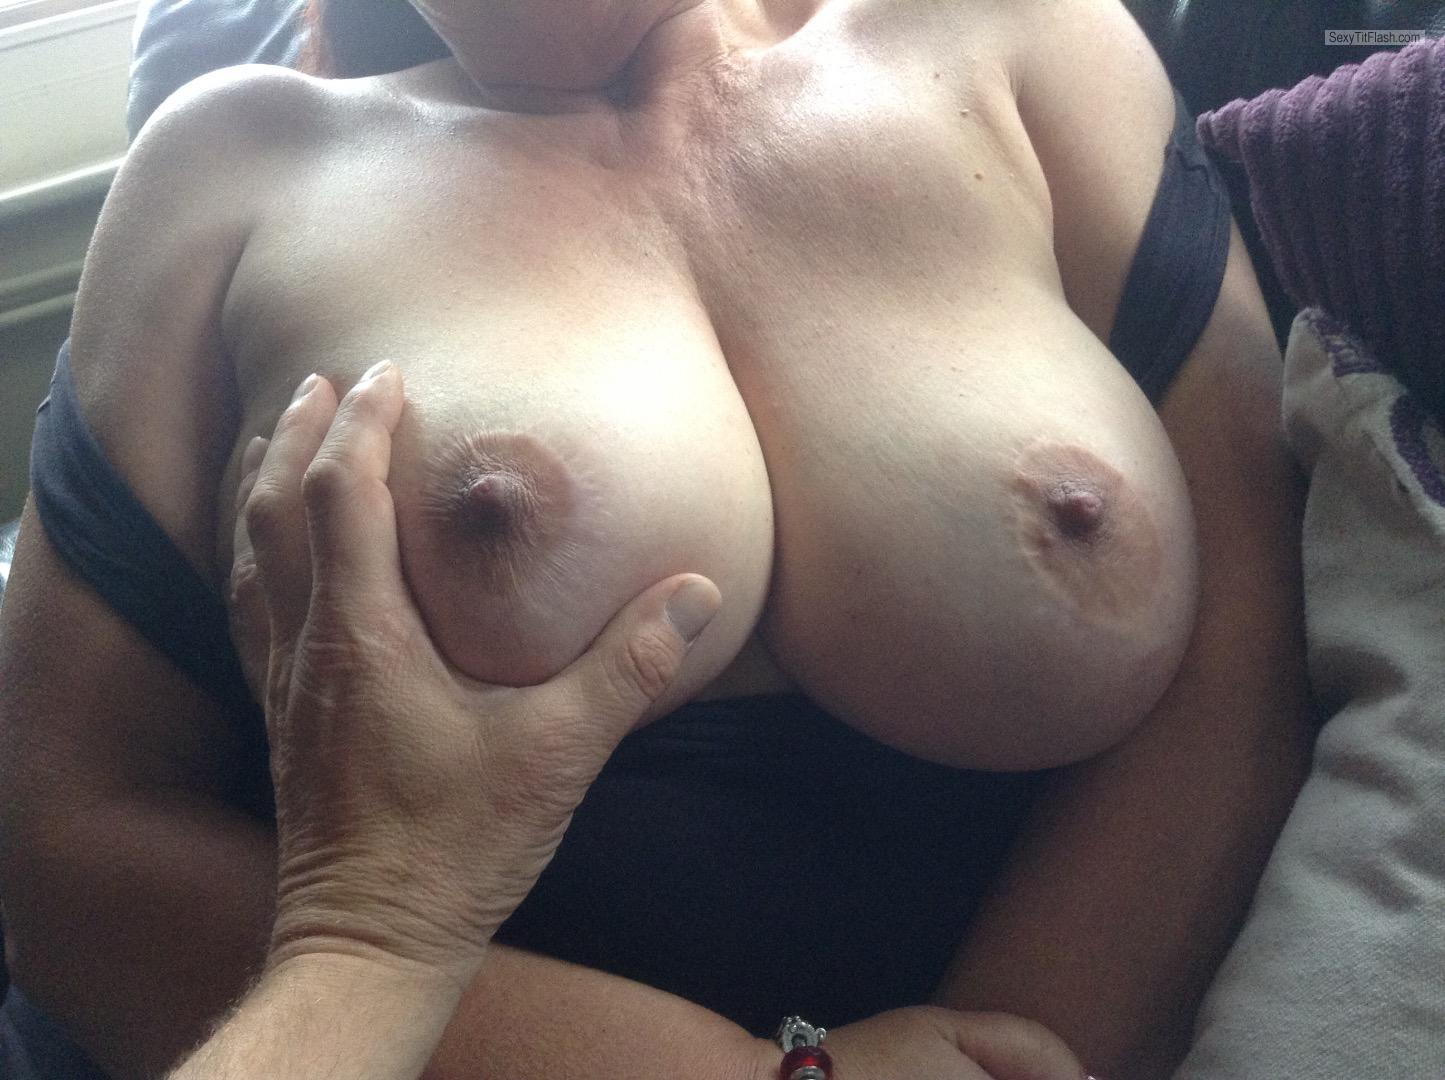 Tit Flash: Wife's Big Tits - Hot Hayley And Hubby from United Kingdom